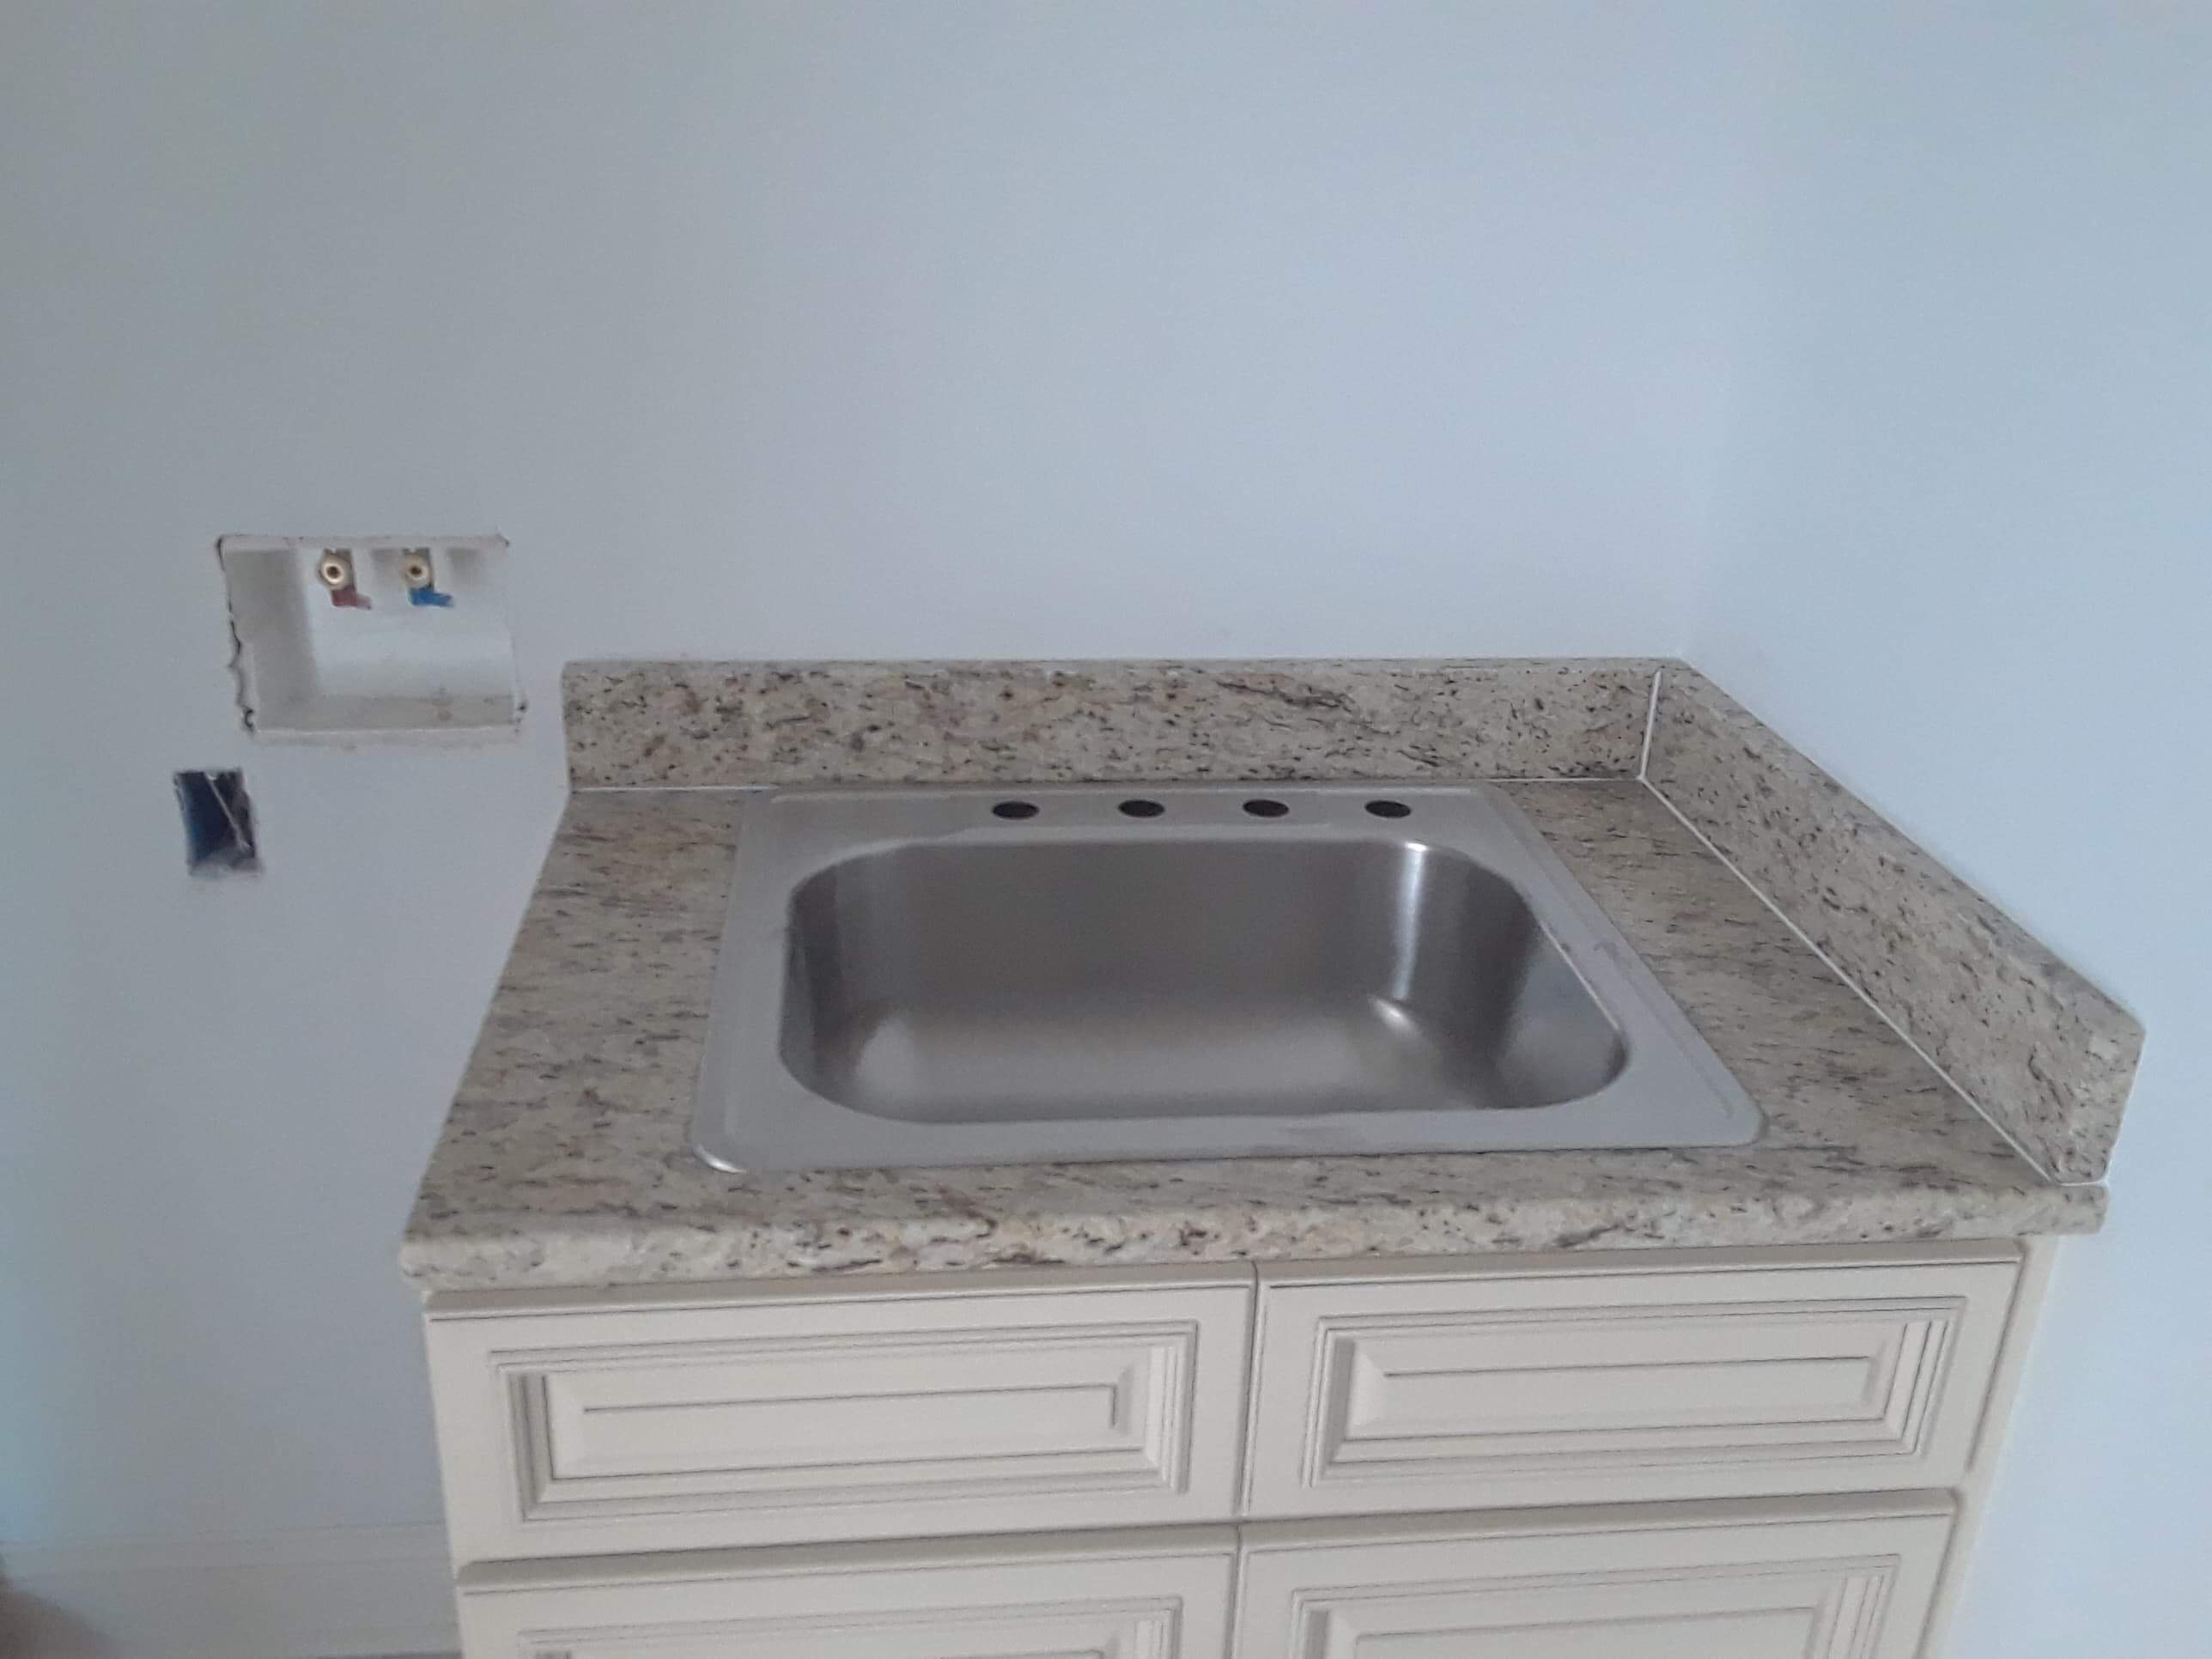 3cm Giallo Ornamental_Laundry with Undermount Single Bowl Sink_Liles